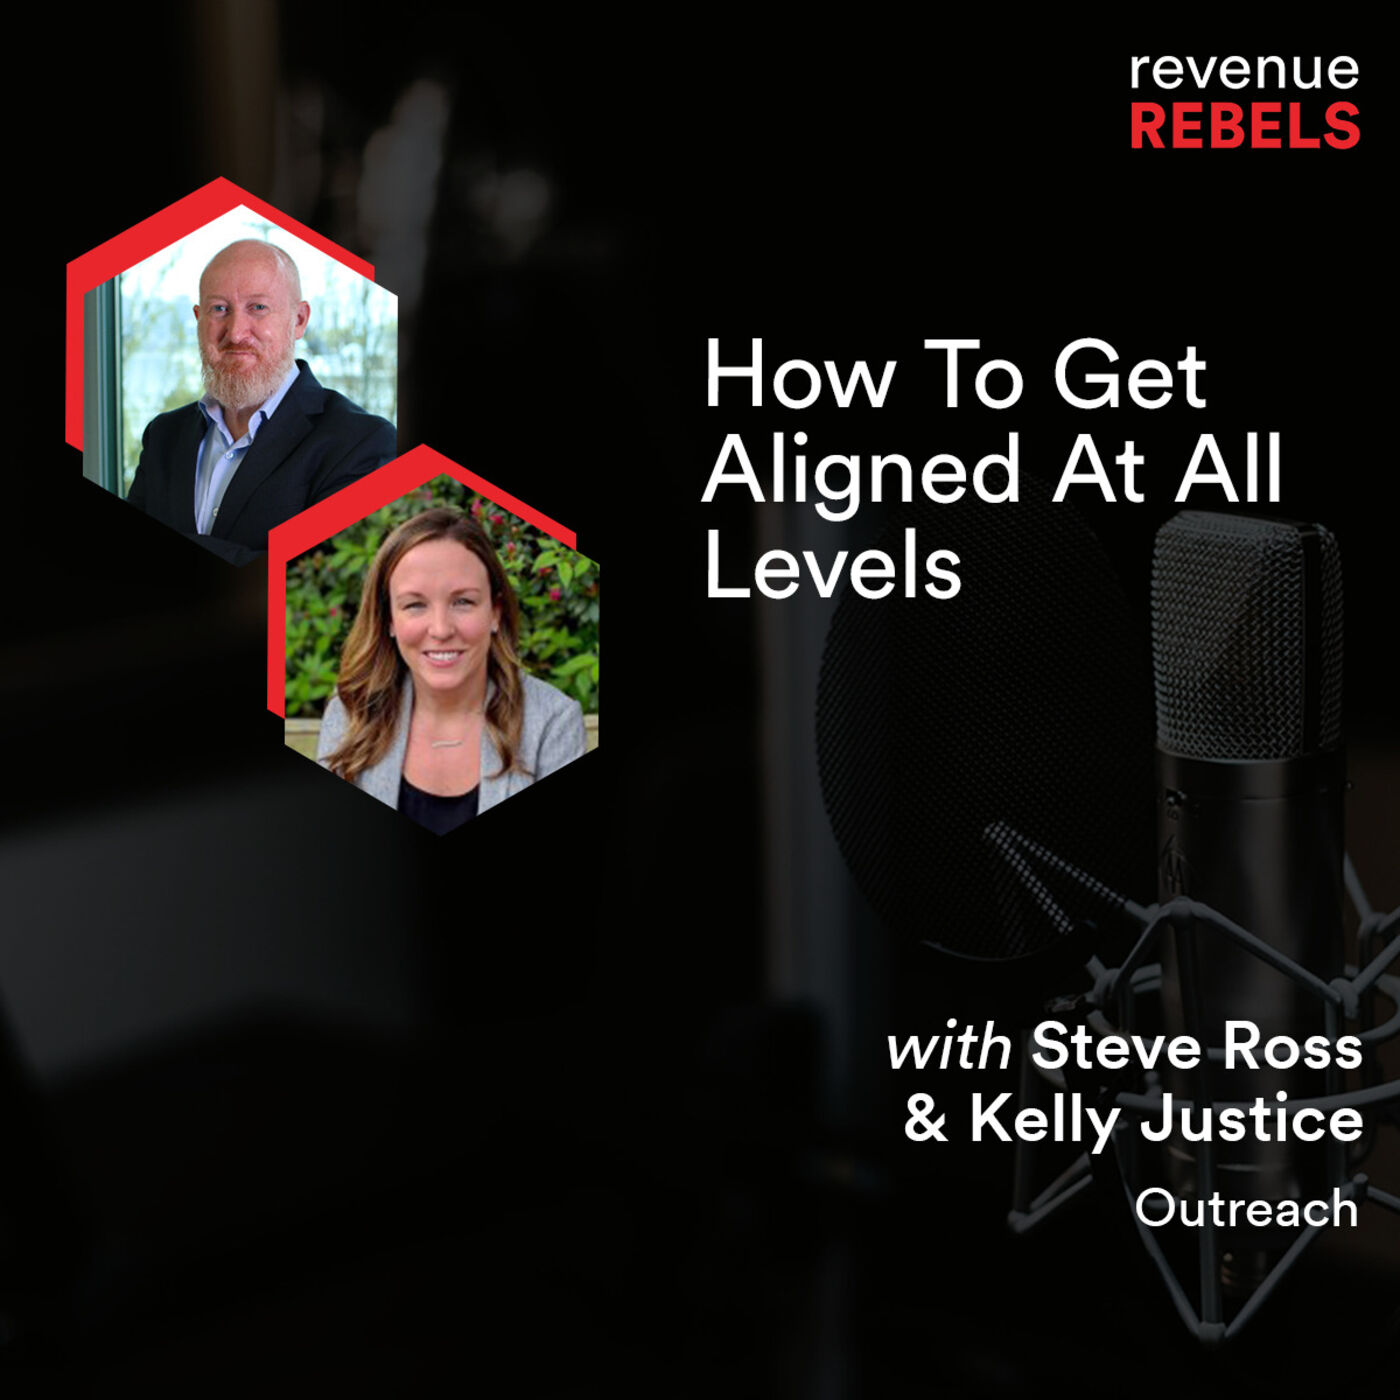 How To Get Aligned At All Levels with Marketing & Sales Duo at Outreach